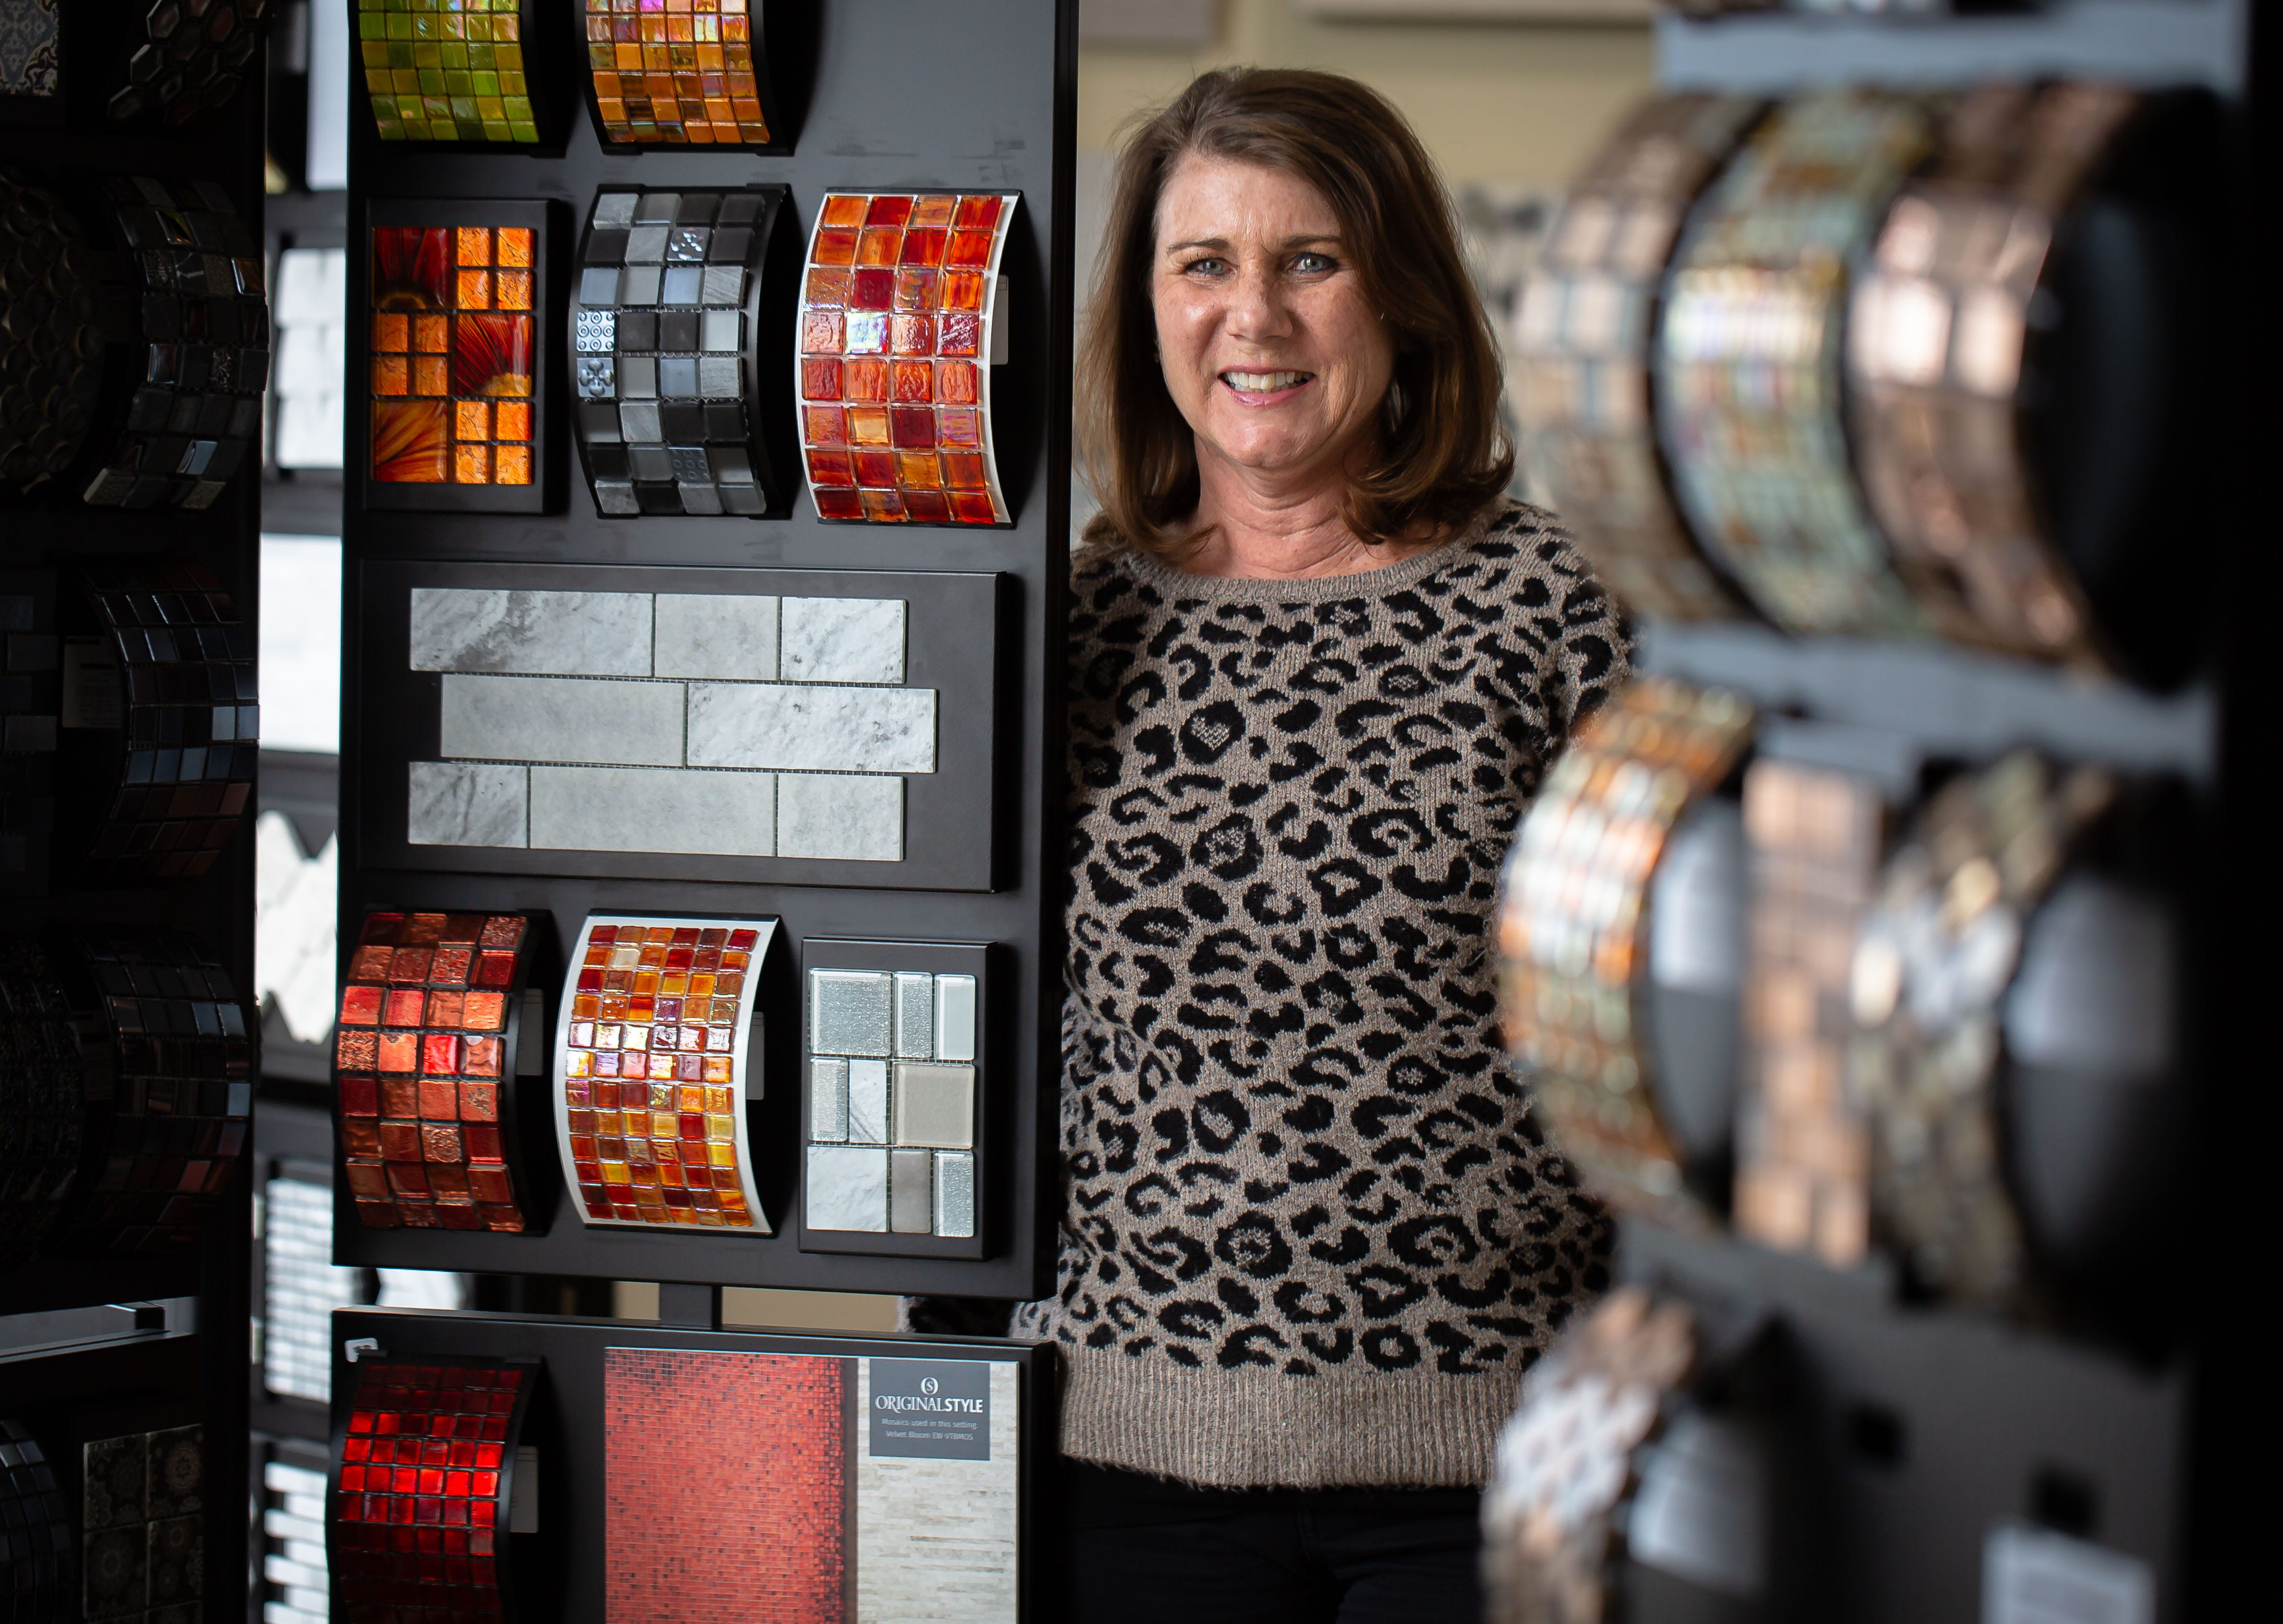 Sheryl Daugherty, the owner & president of Arizona Tile Company, on the showroom floor in Springfield, Ill., Thursday, March 11, 2021. Sheryl Daugherty, has owned Arizona Tile Company for the last 25 years with her husband, Cary, and was initially worried about being able to continue to pay her employees through the shutdown caused by the COVID-19 pandemic. [Justin L. Fowler/The State Journal-Register]